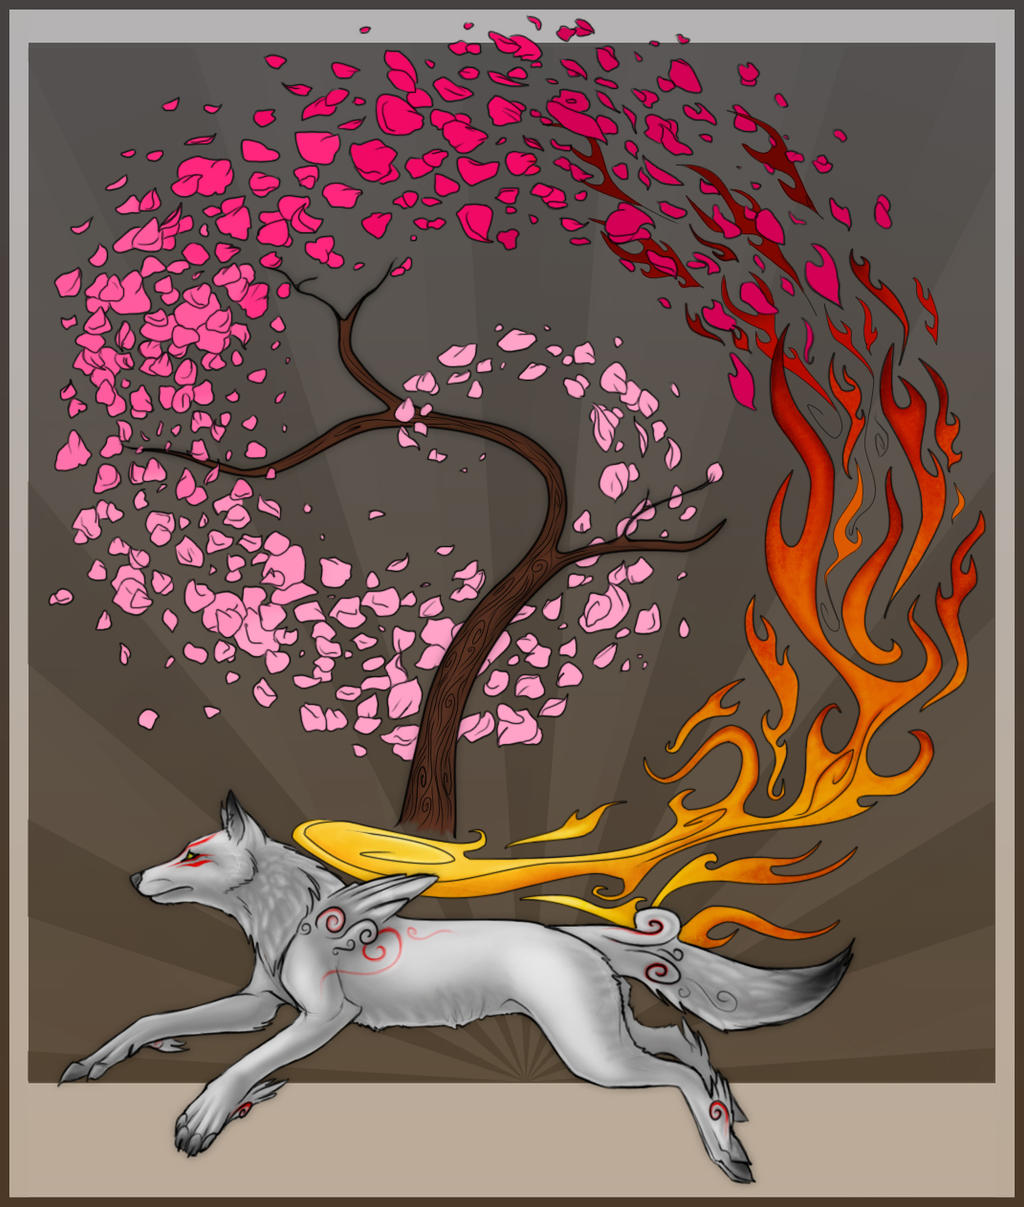 Amaterasu by NorthSkyThunder